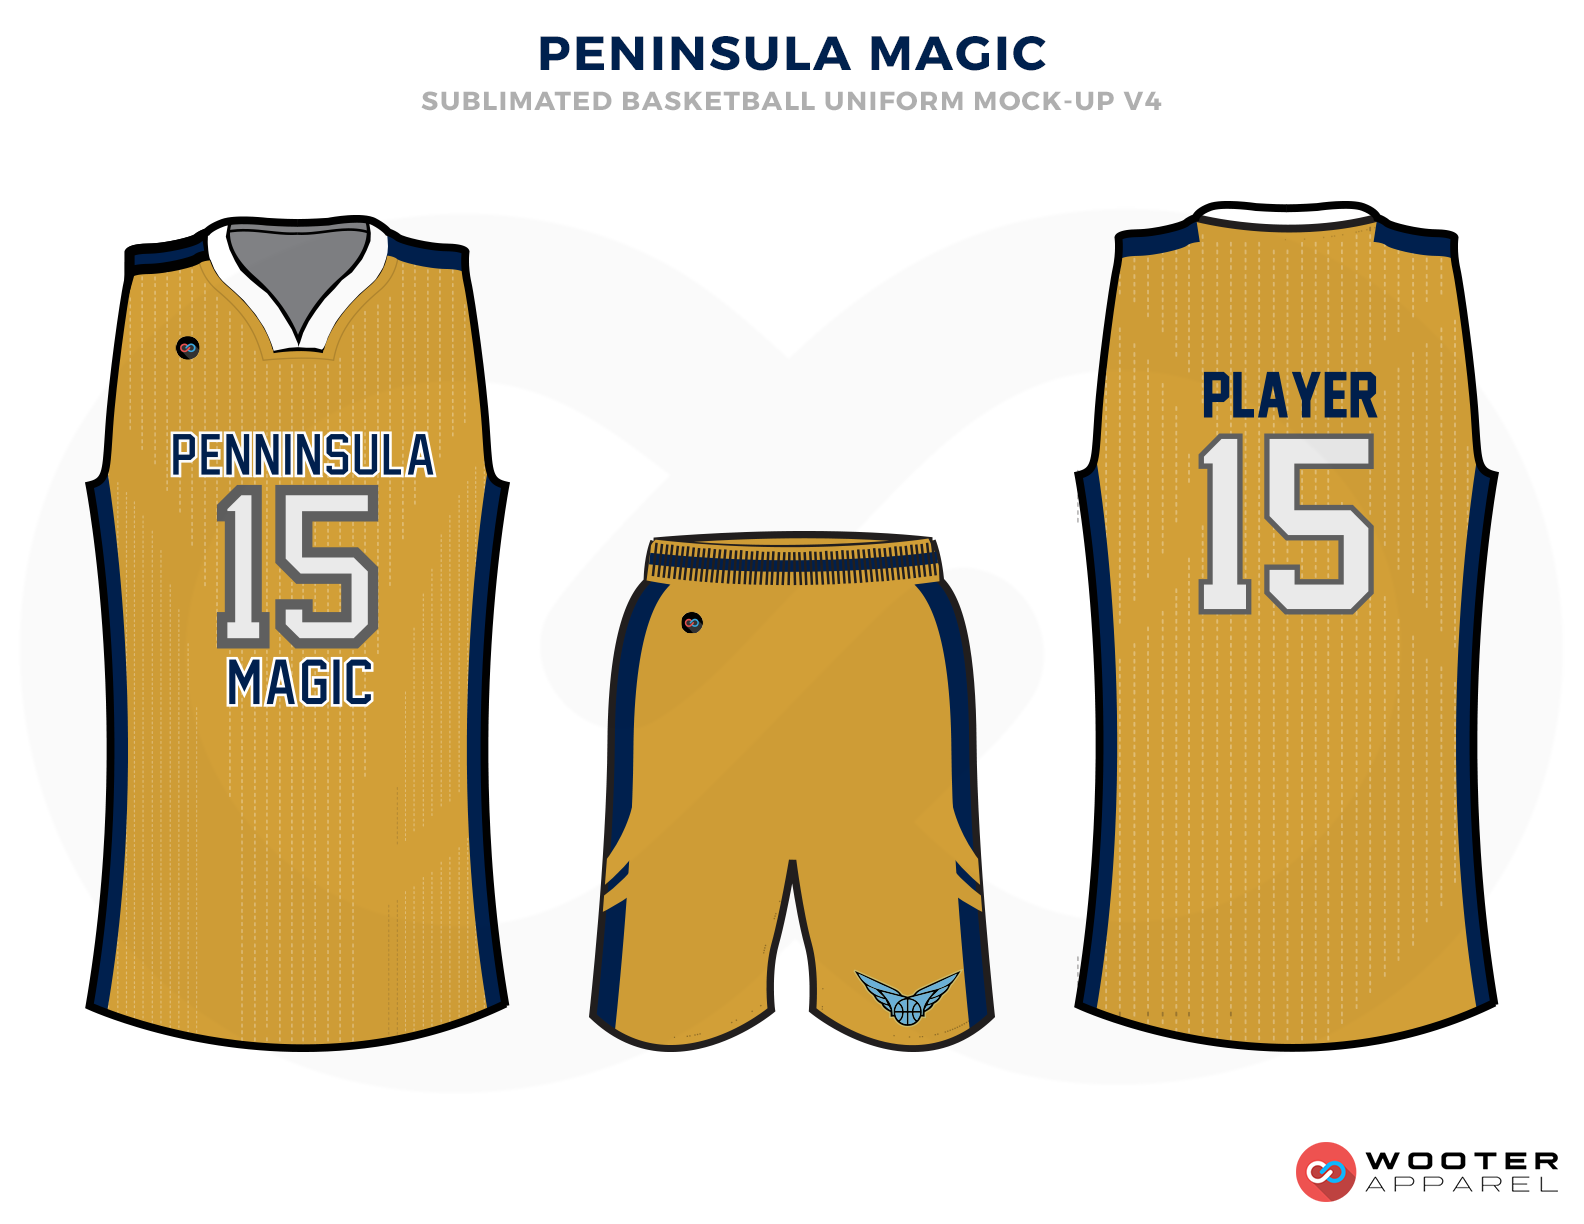 PENINSULE MAGIC Golden Blue and White Basketball Uniforms, Jersey and Shorts